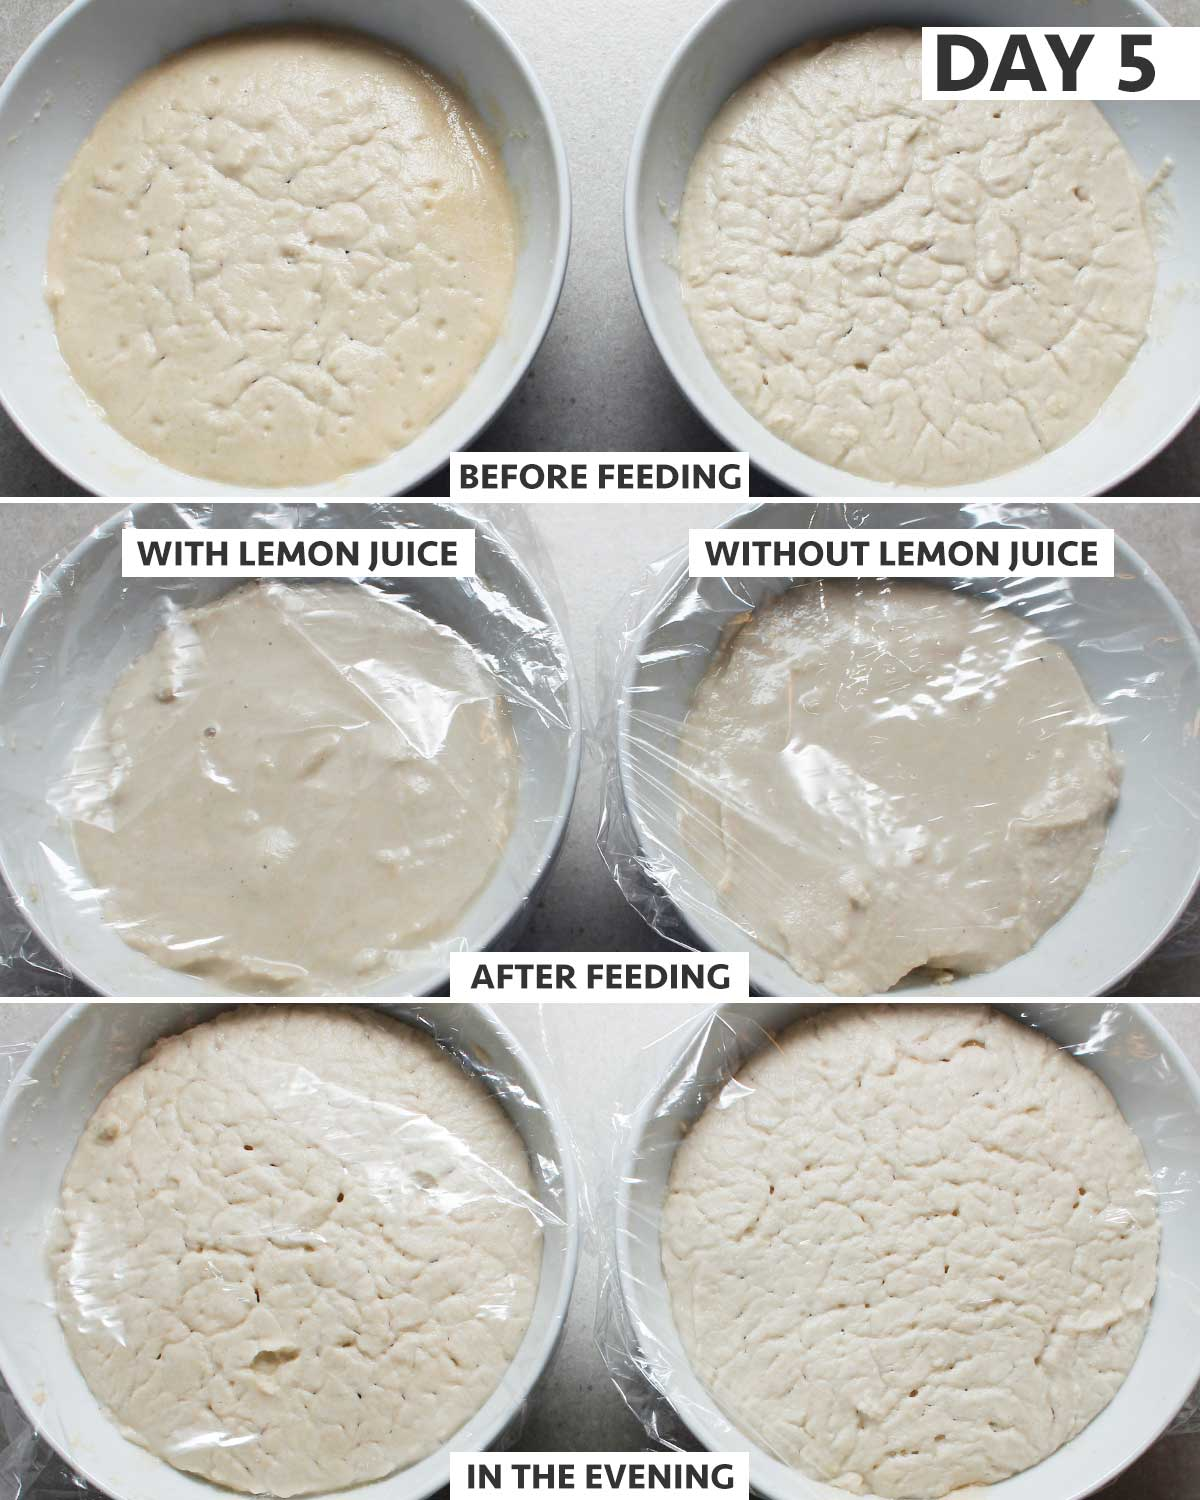 Day 5 of 8: gluten-free sourdough starter step-by-step process